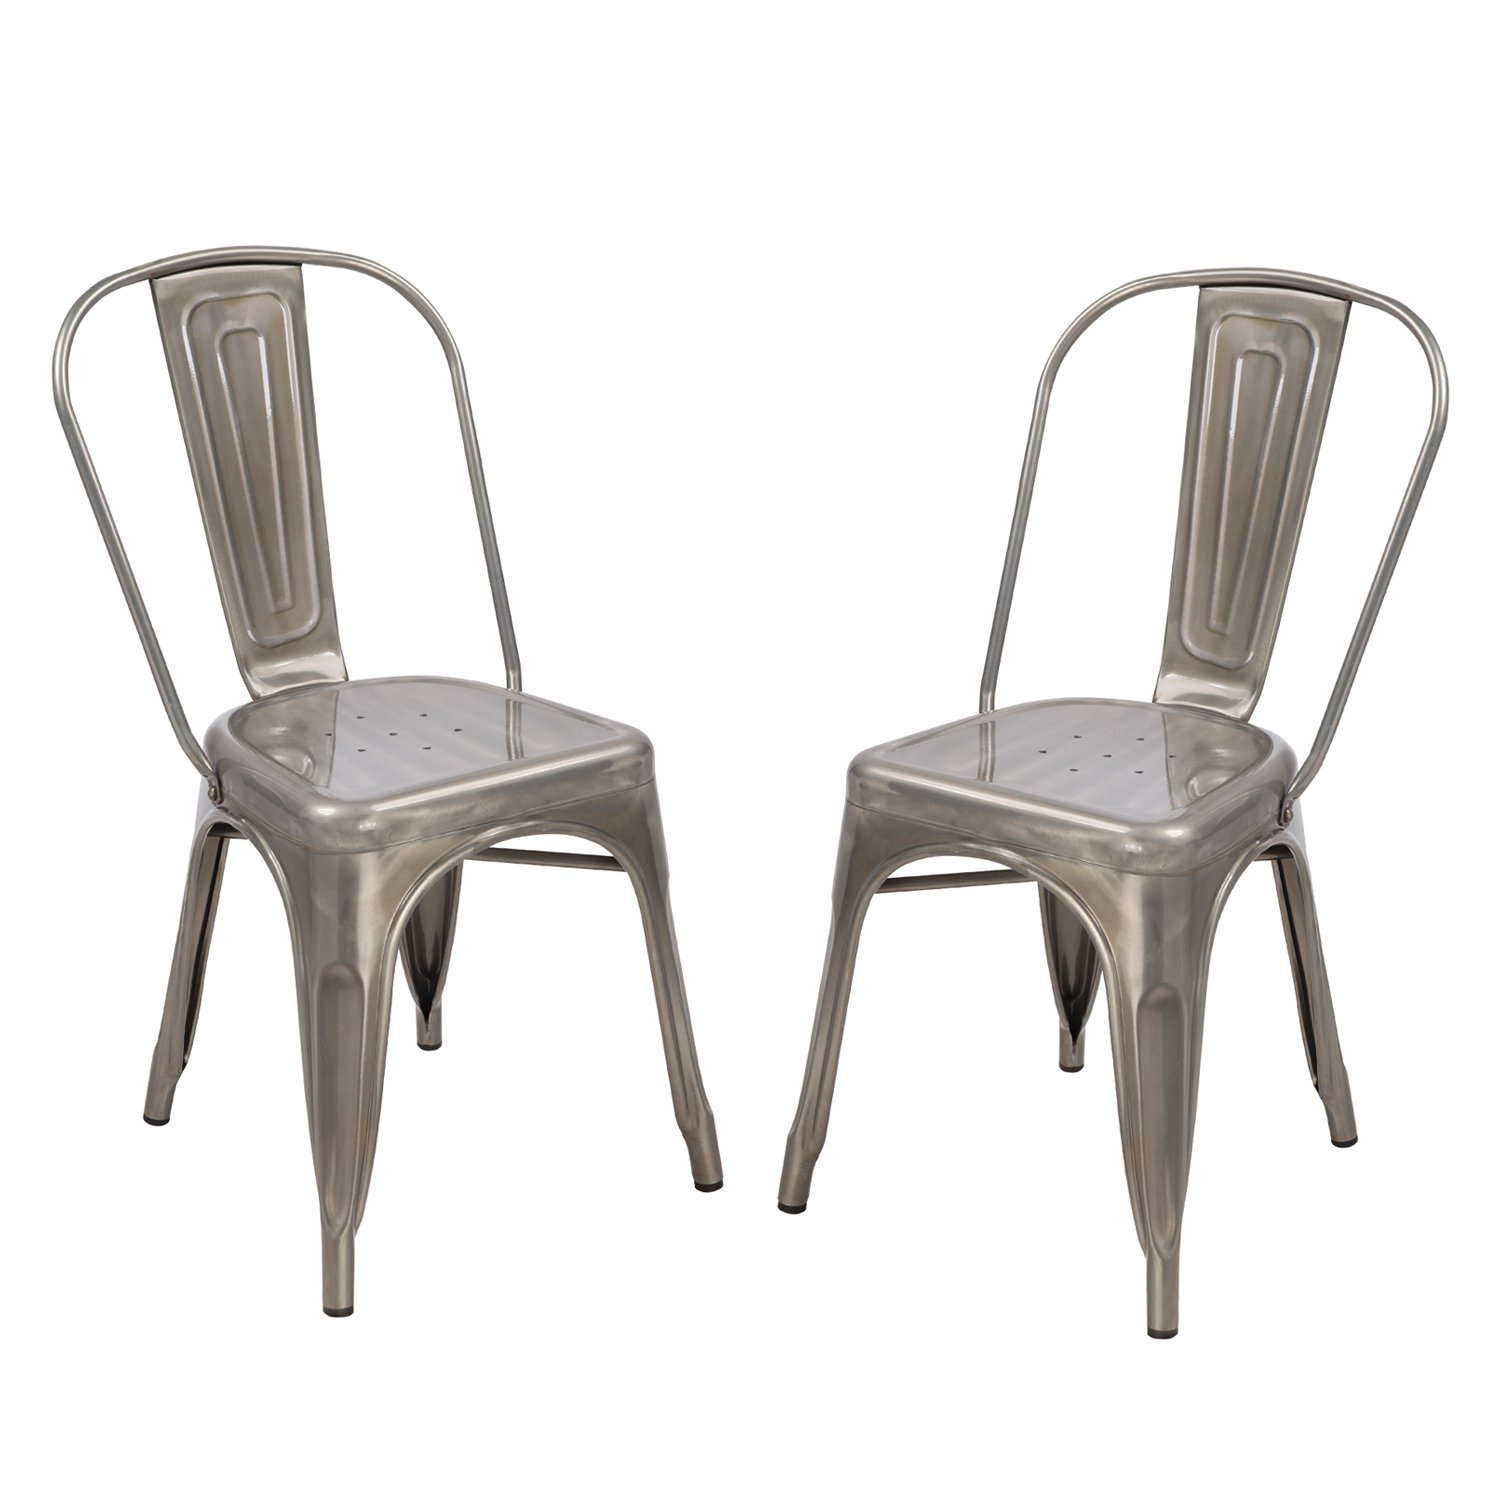 Metal Chairs for DIY Farmhouse Table